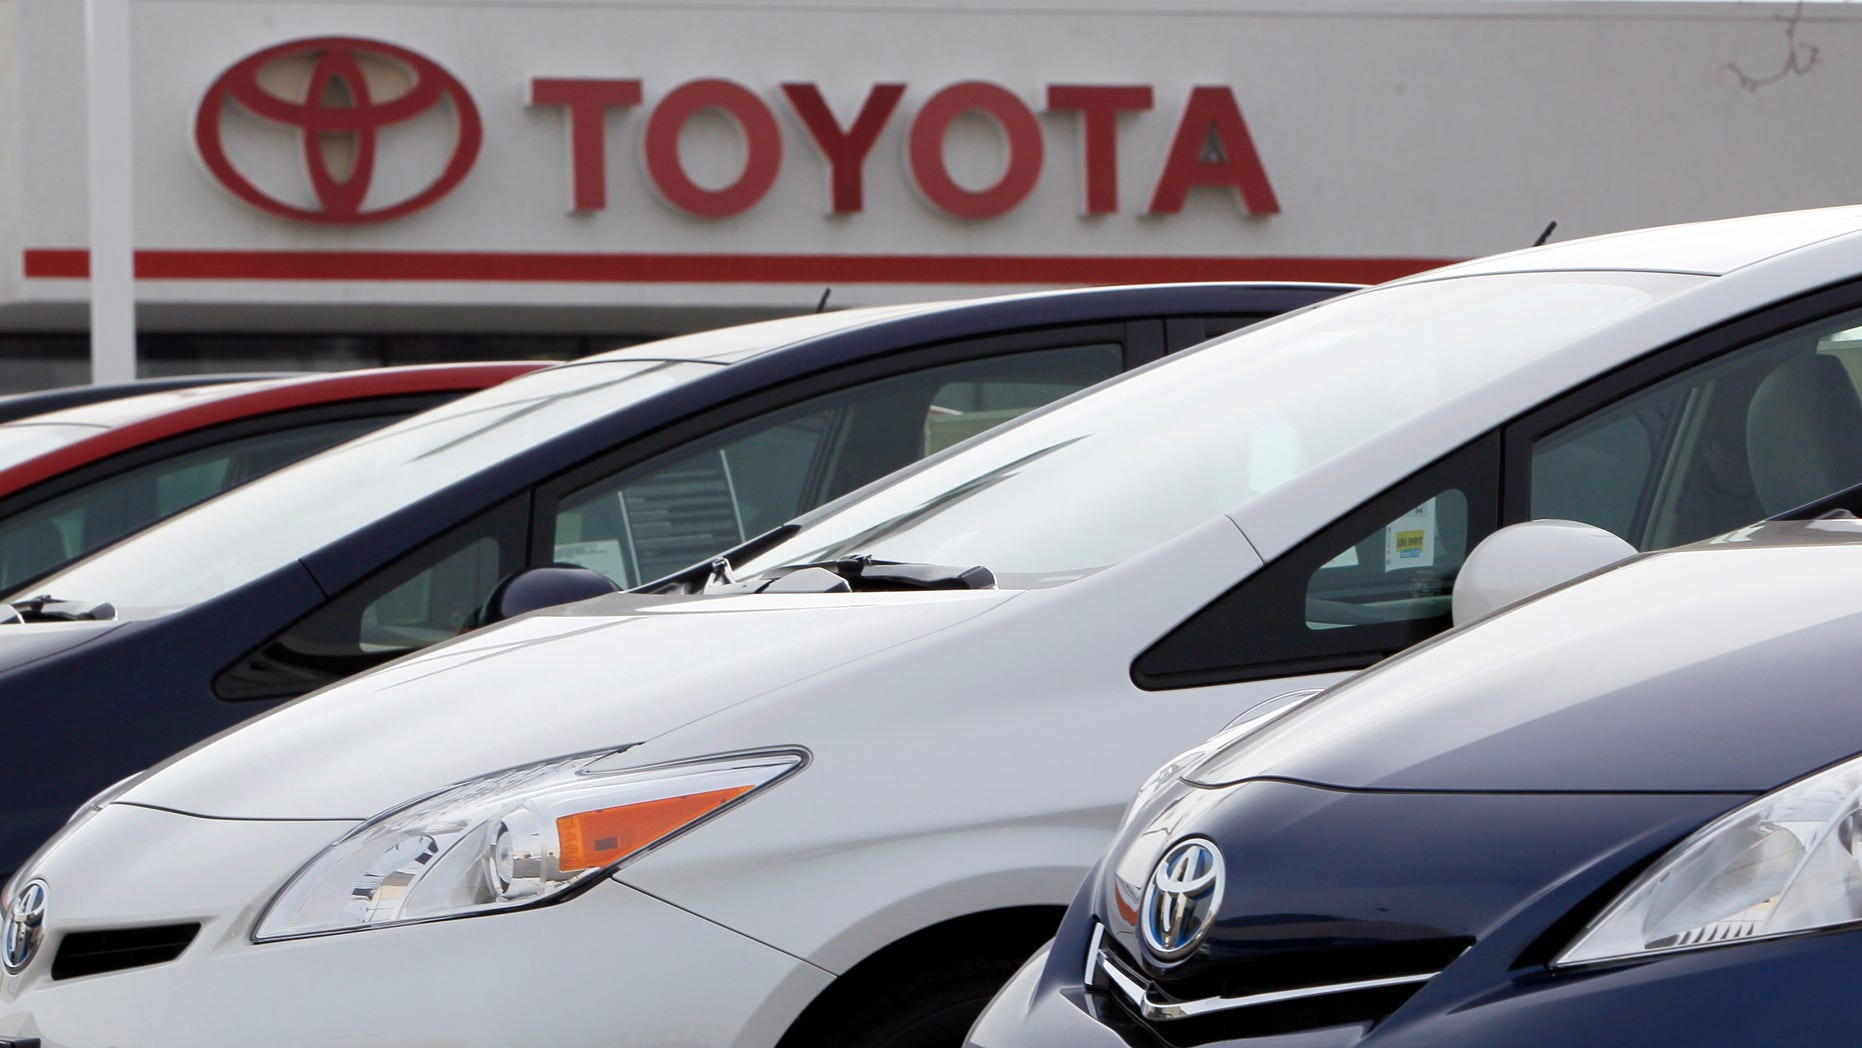 This Feb. 19, 2012 file photo shows a line of 2012 Prius sedans at a Toyota dealership in the south Denver suburb of Littleton, Colo. Toyota and Chrysler saw big U.S. sales gains in April 2012, but they came at the expense of General Motors and Ford. Toyota said its sales rose 12 percent as its inventories finally return to pre-earthquake levels. (AP Photo/David Zalubowski)